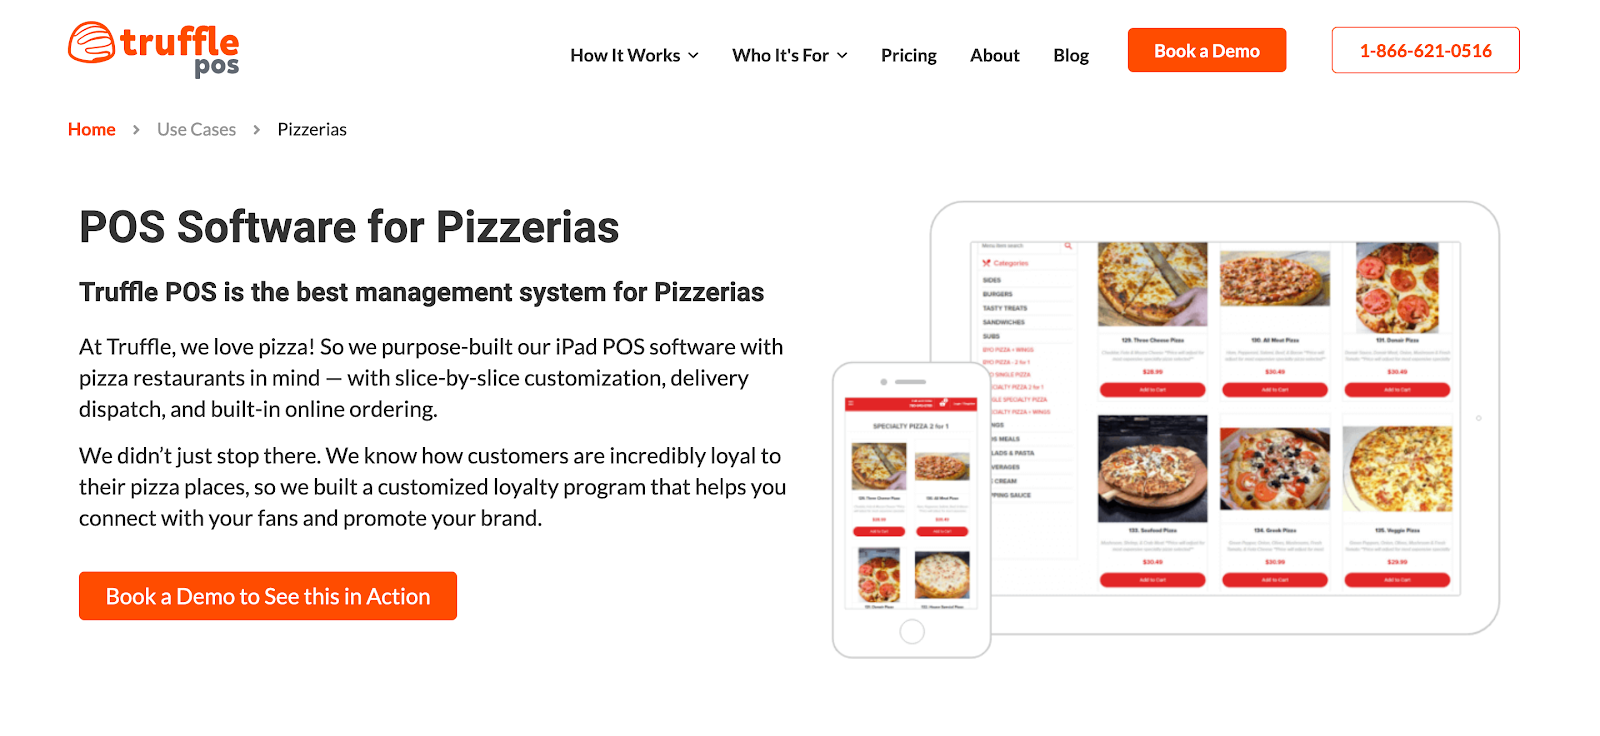 POS Software for Pizzerias